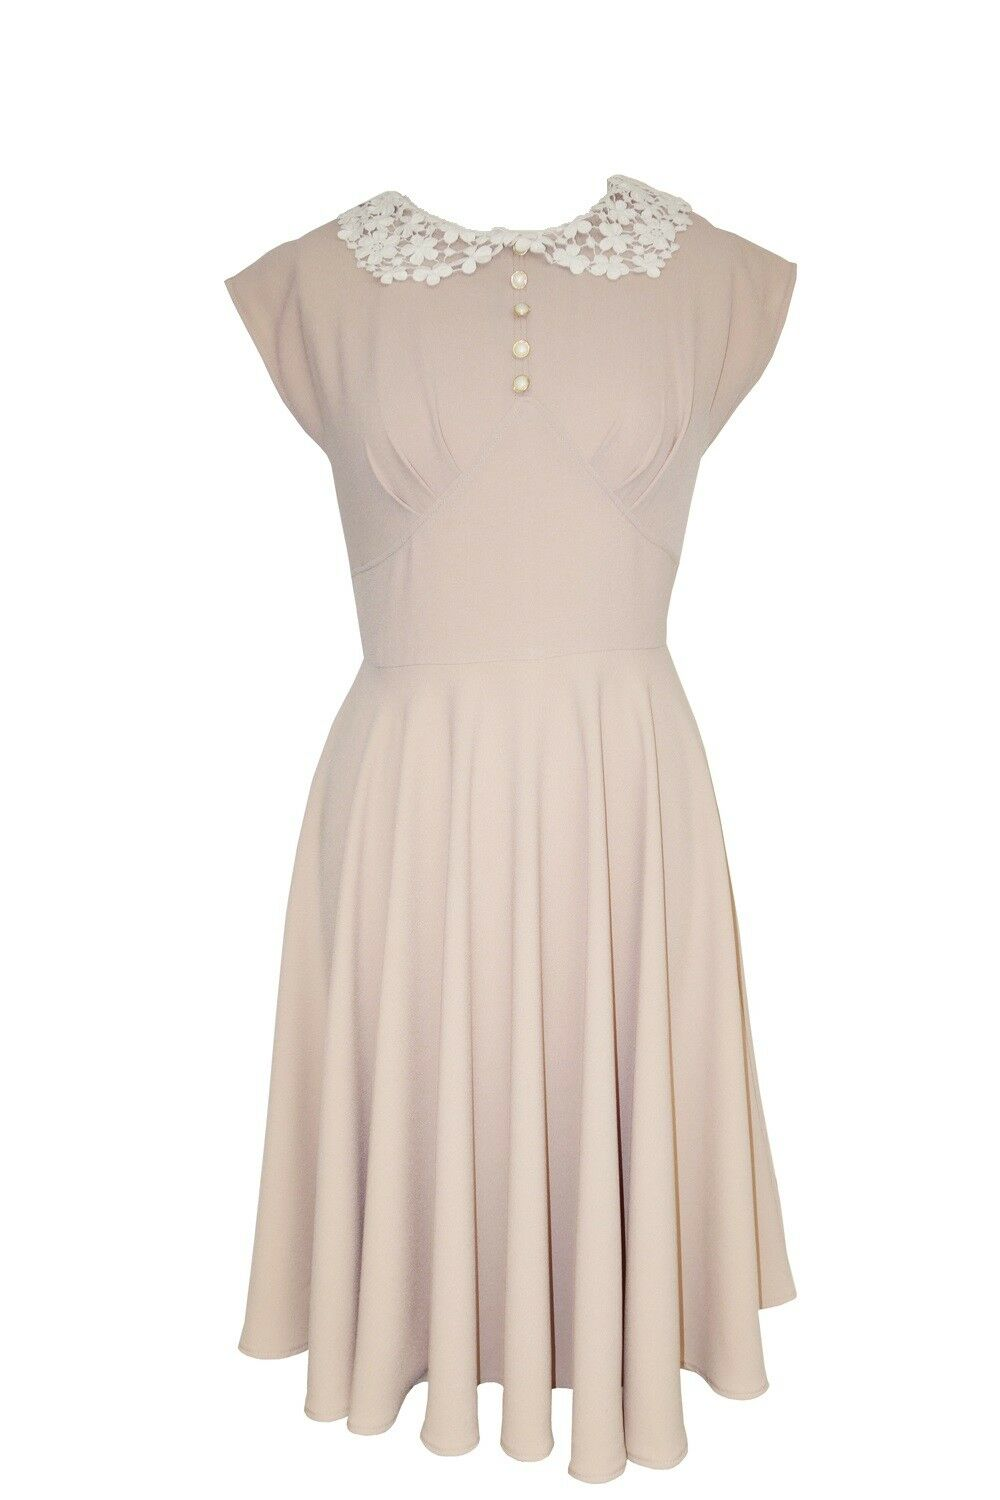 Hell Bunny Plus 50's Vintage Fit and Flare Pretty Crochet Collar Emilie Dress